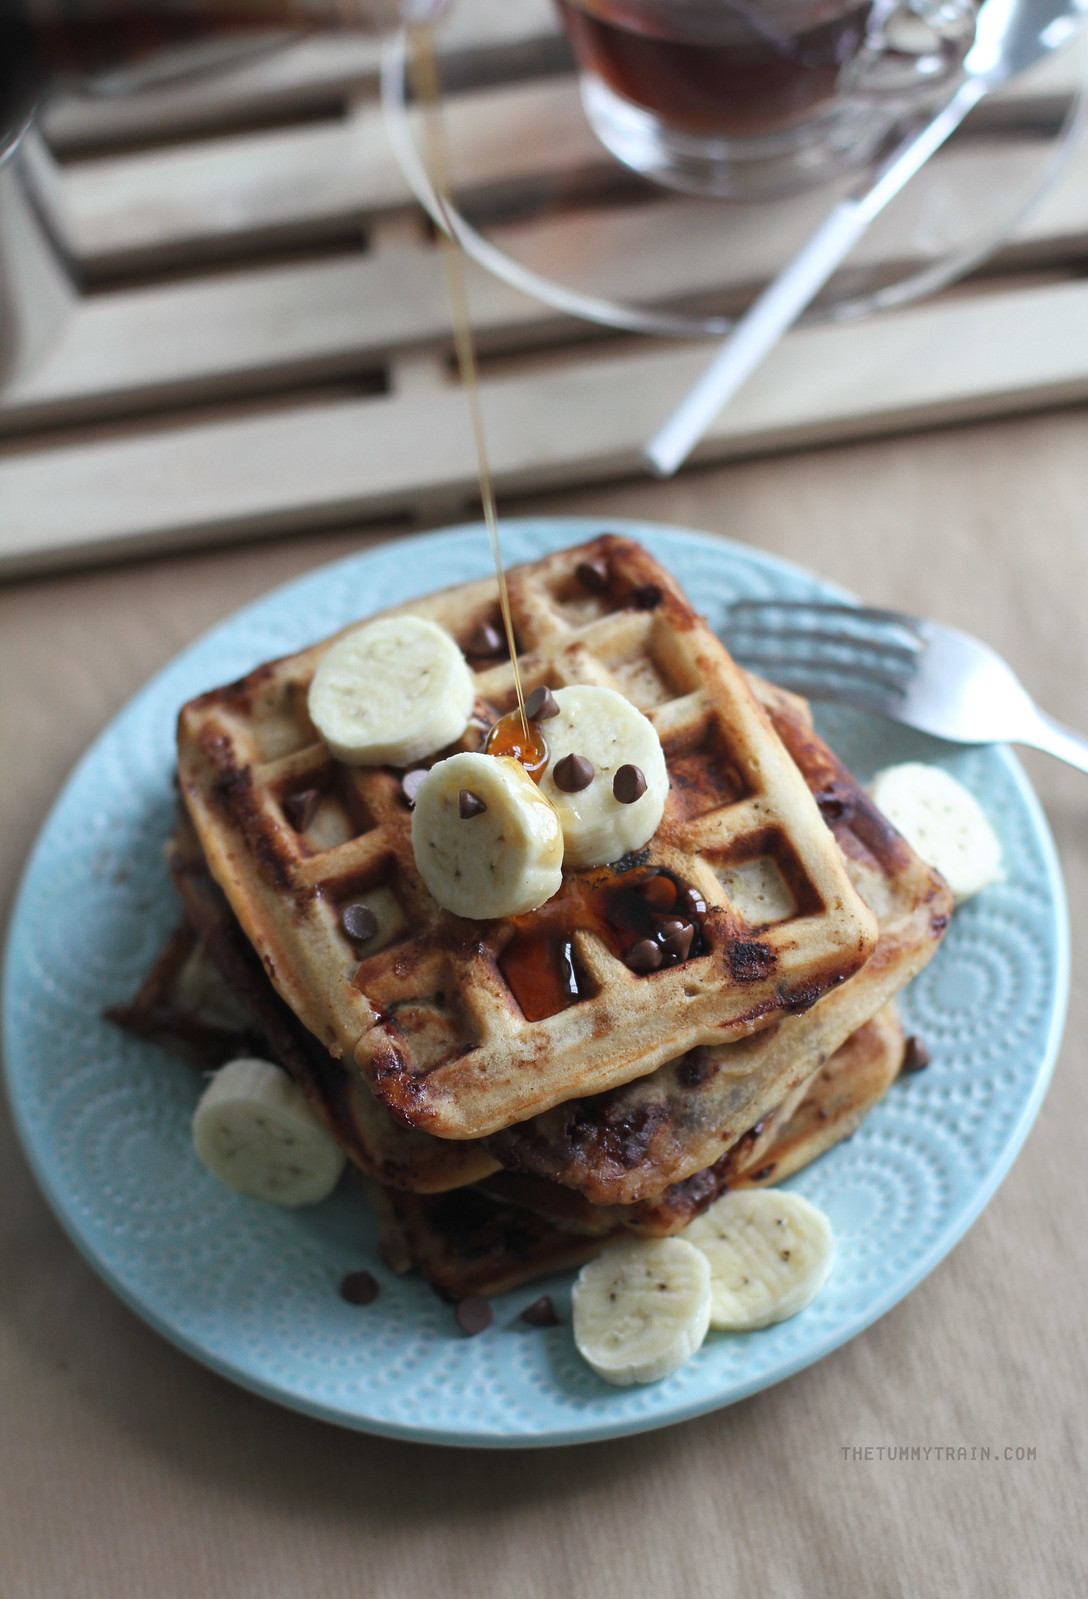 16707925337 dac402a6ab h - Peanut Butter Banana Waffles coz it's Waffle Day!